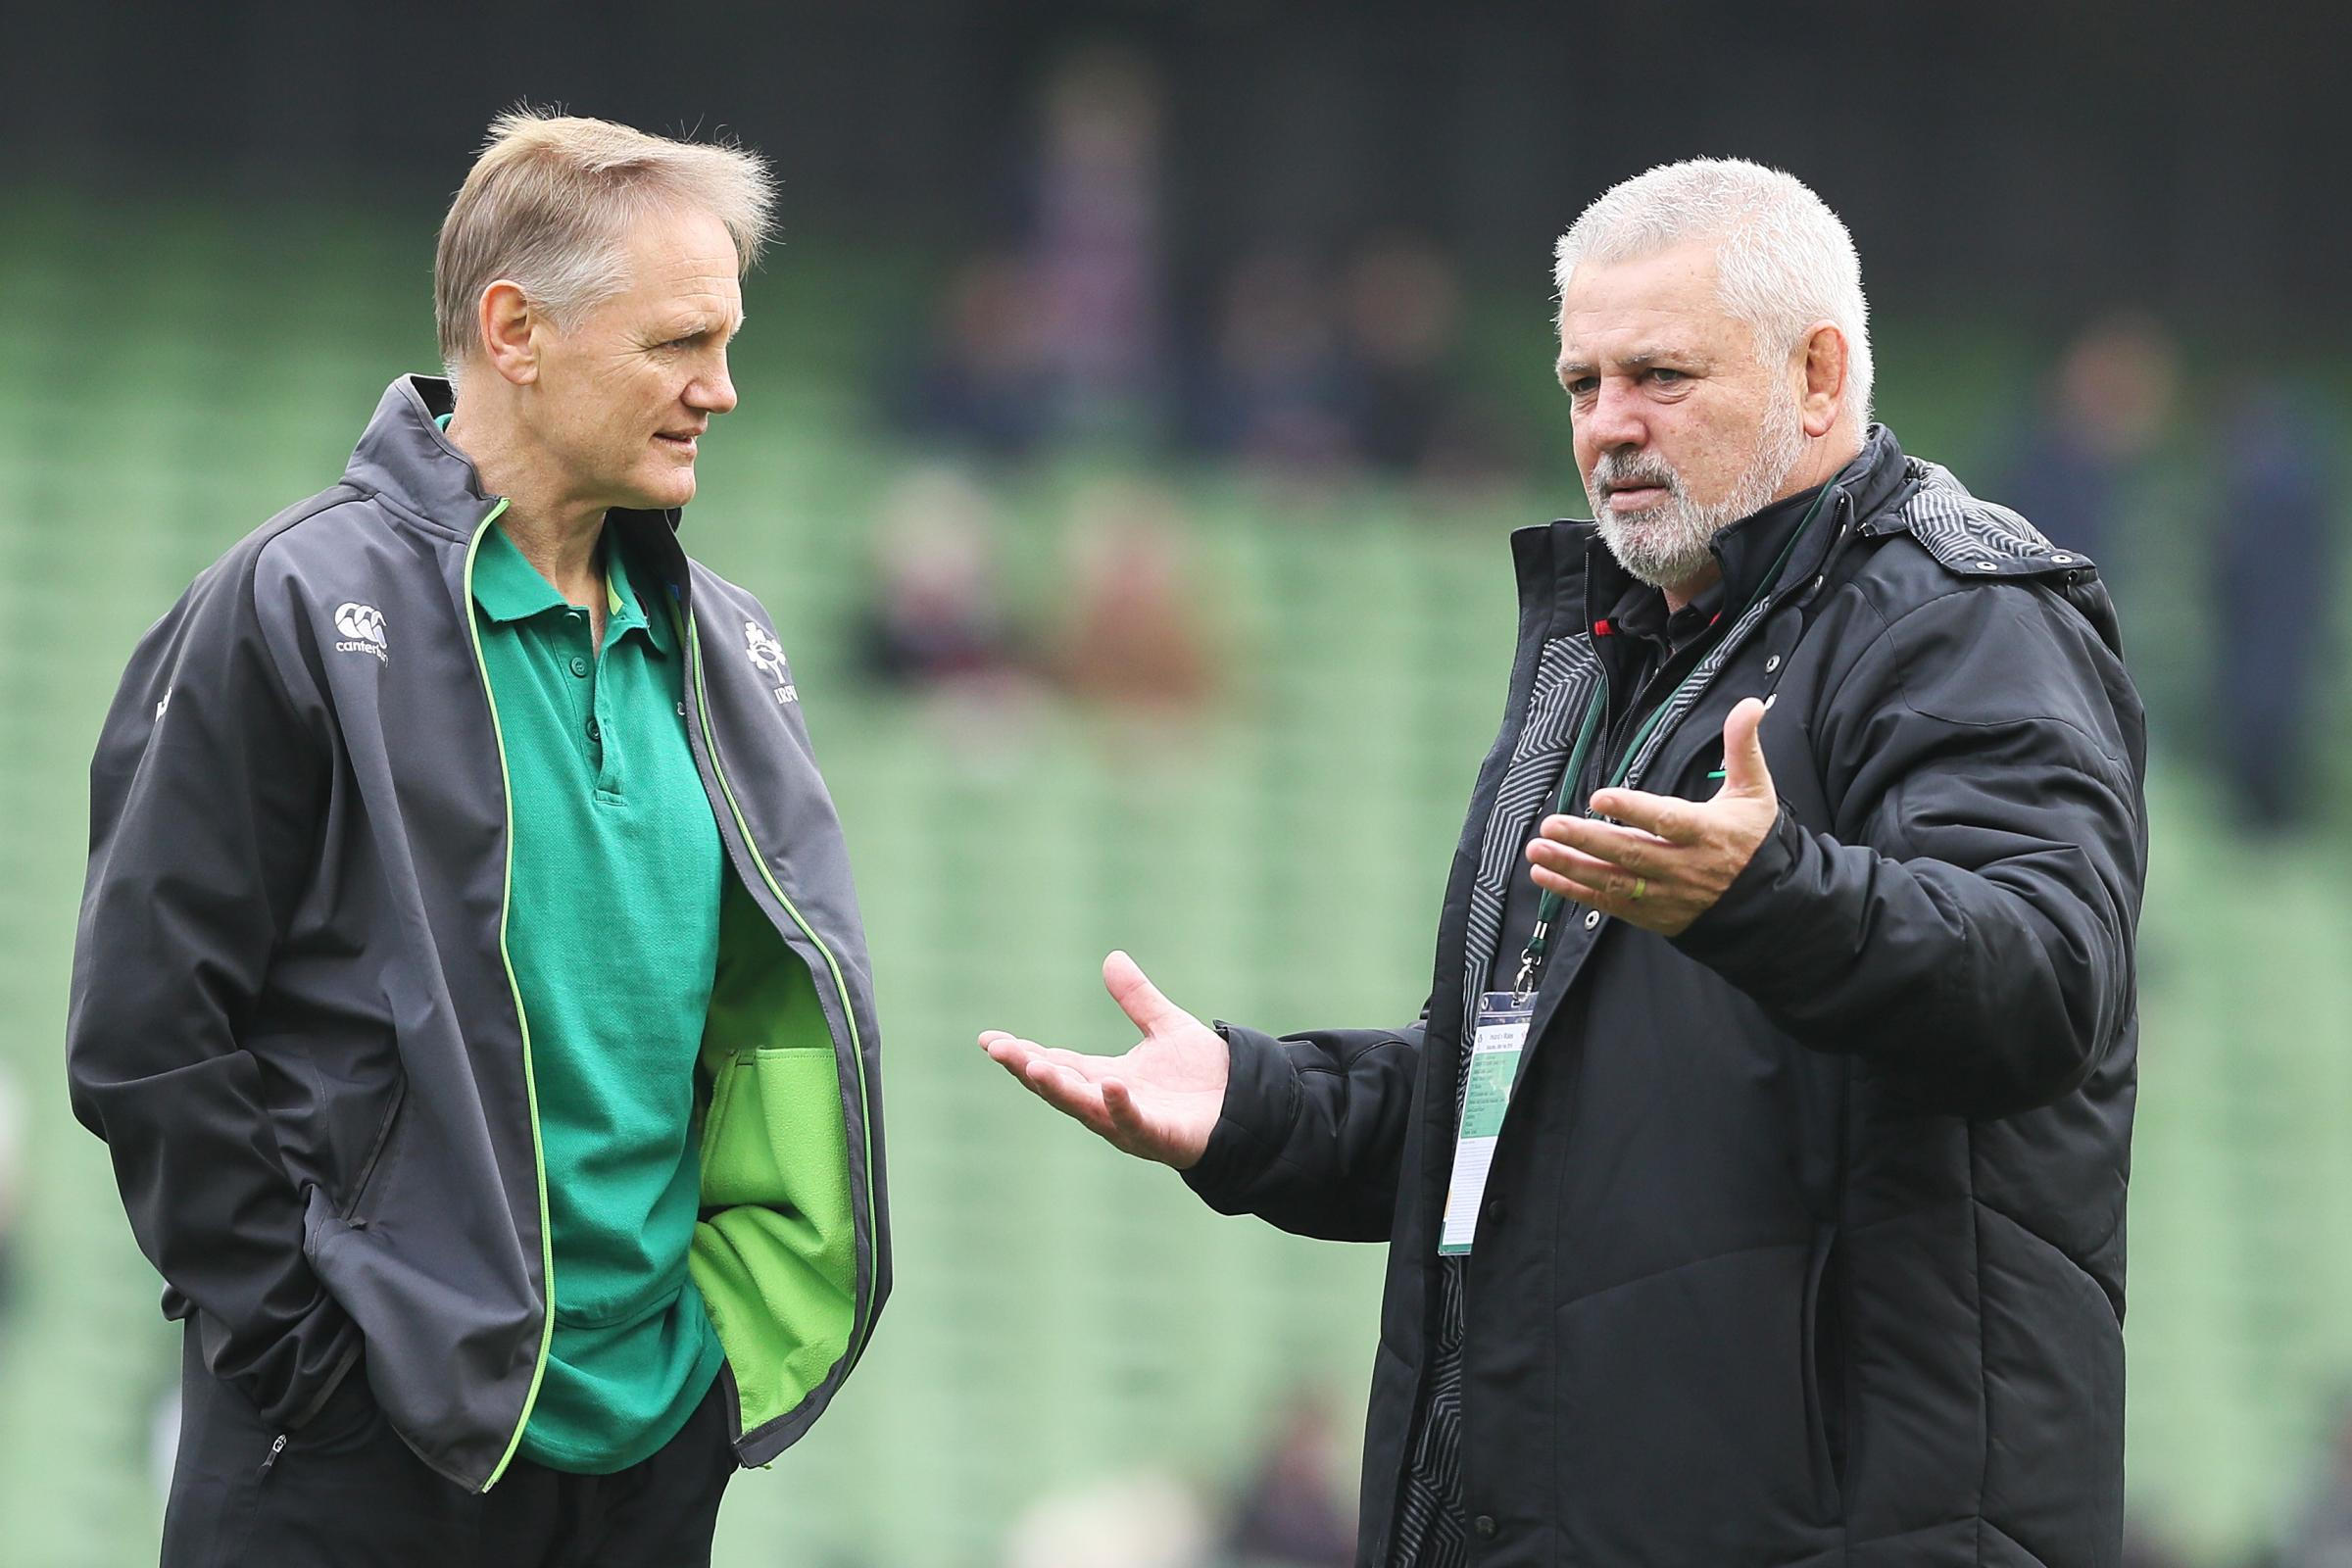 Ireland boss Joe Schmidt, left, and Wales coach Warren Gatland